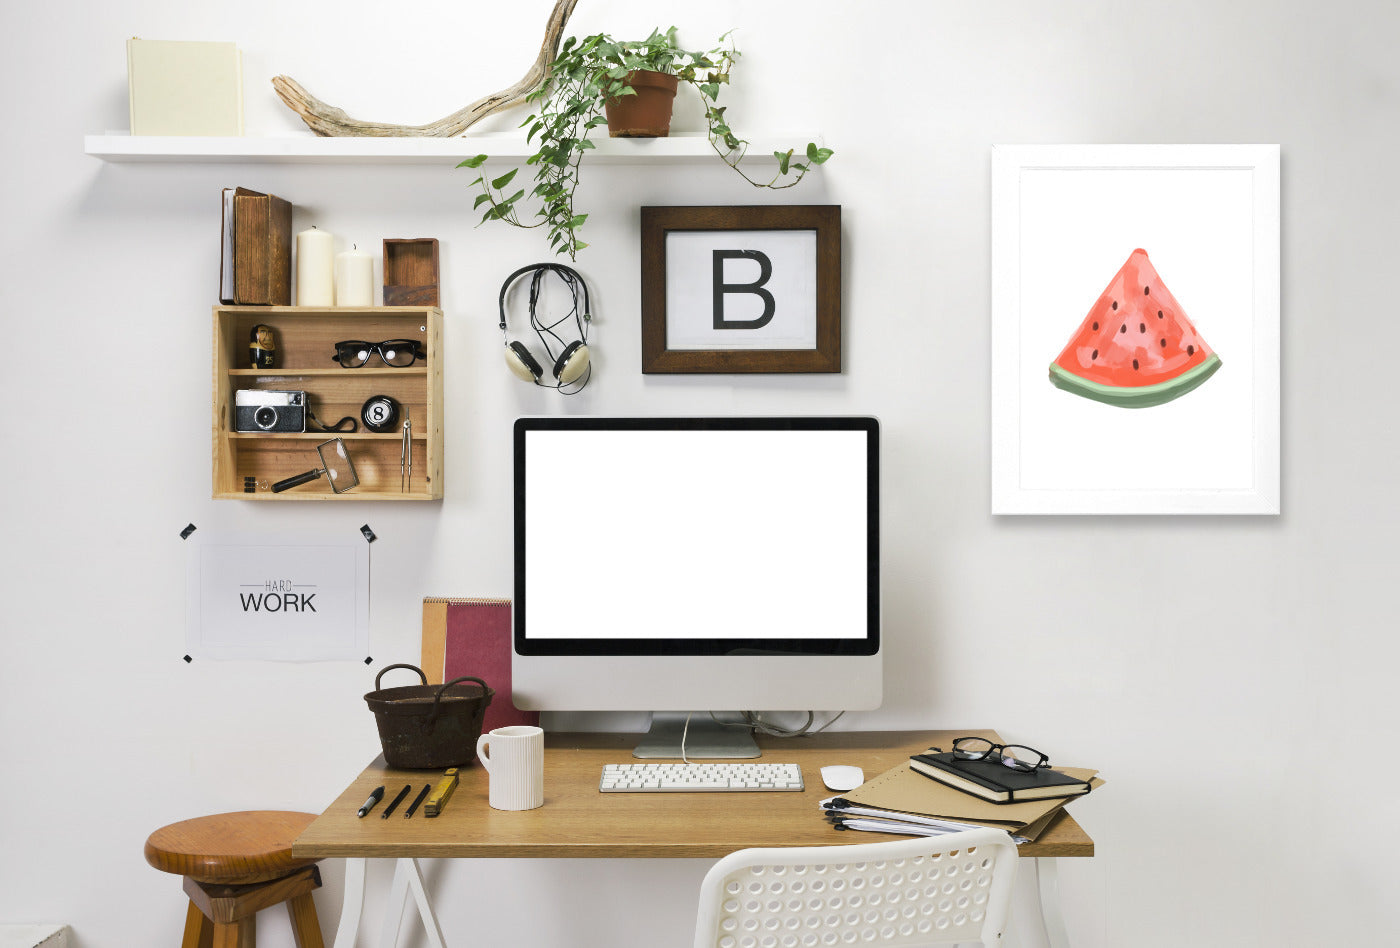 Watermelon Slice by Jetty Printables Framed Print - Americanflat